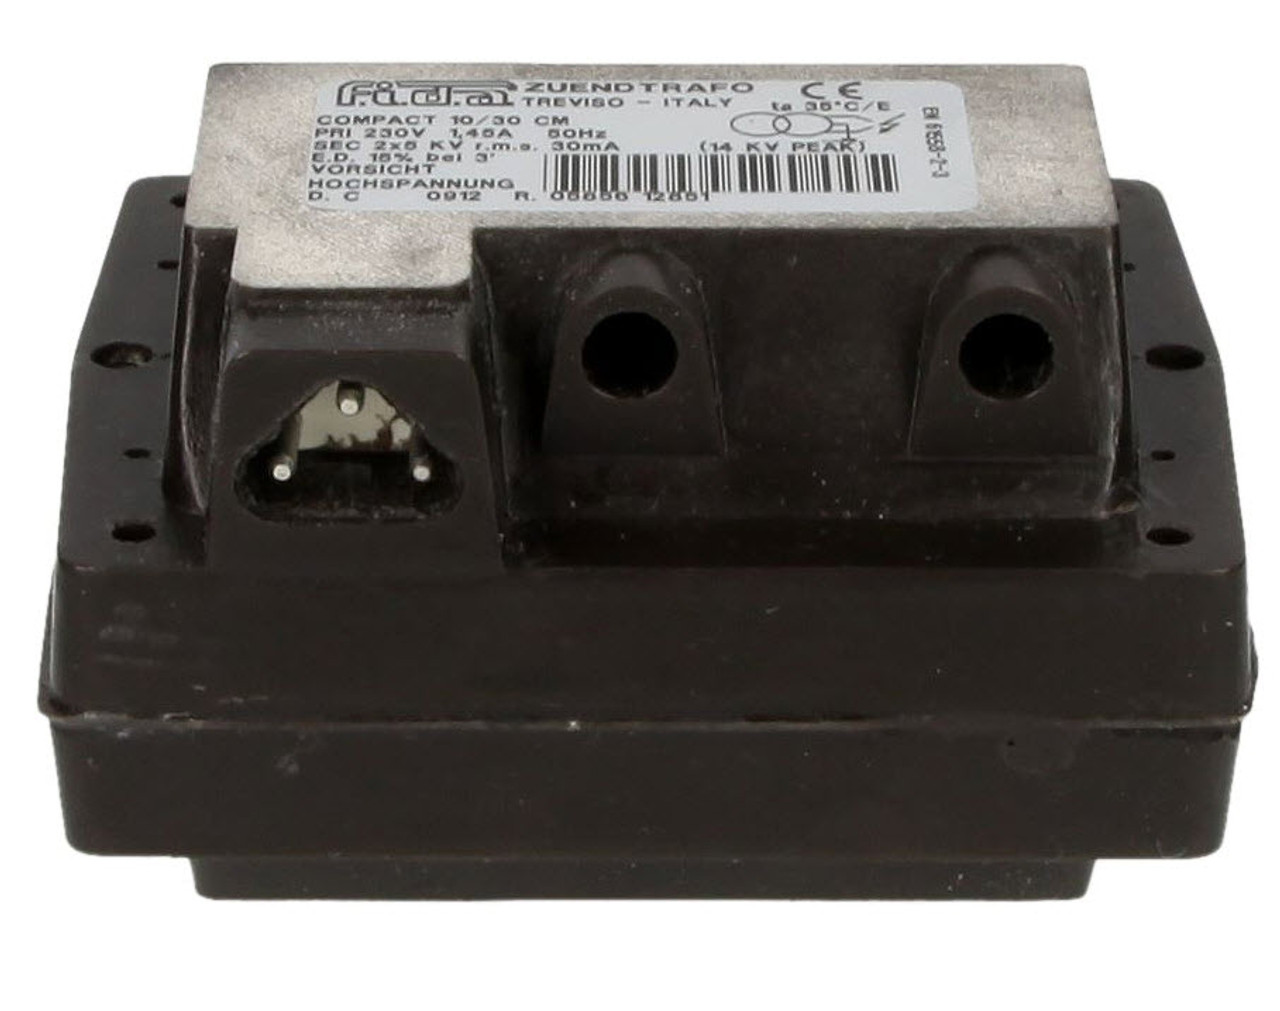 10/30 CM, FIDA ignition transformer